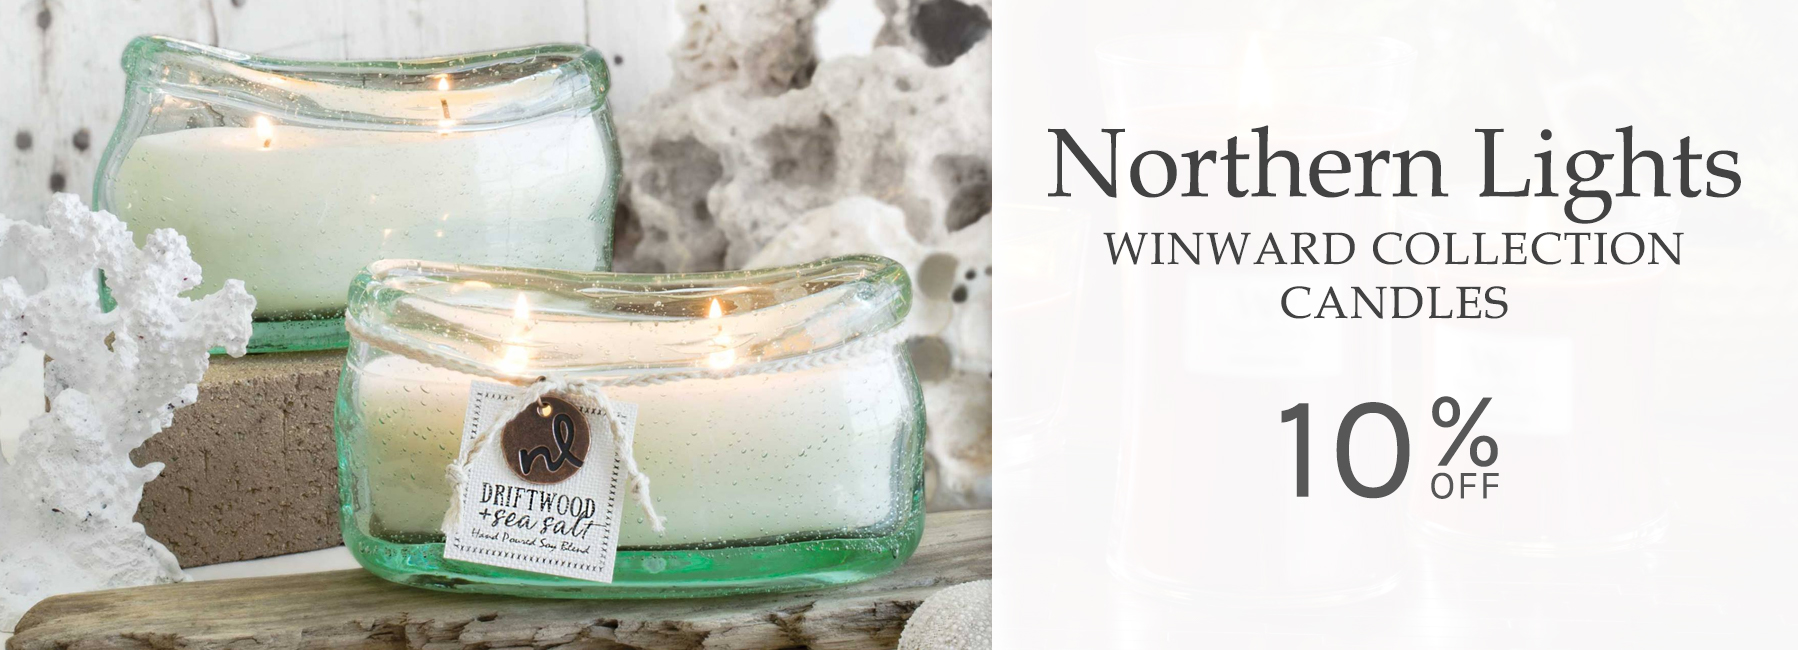 Northern Lights - NEW Winward Collection Candles - 10 Percent OFF